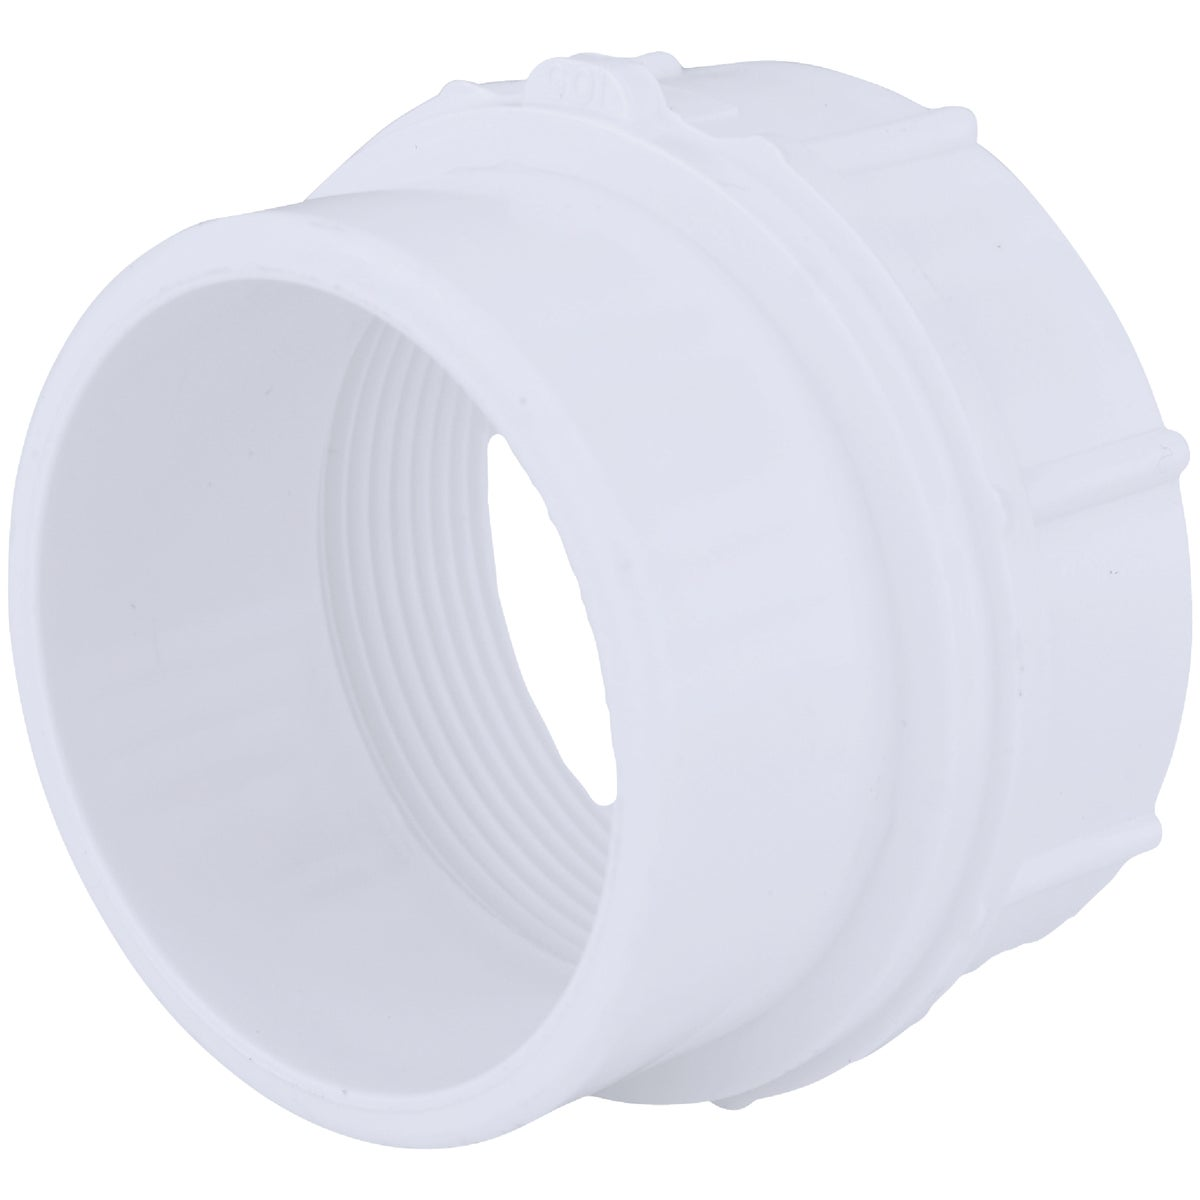 "2"" CLEANOUT FITTING - 71619 by Genova Inc  Pvc Dwv"